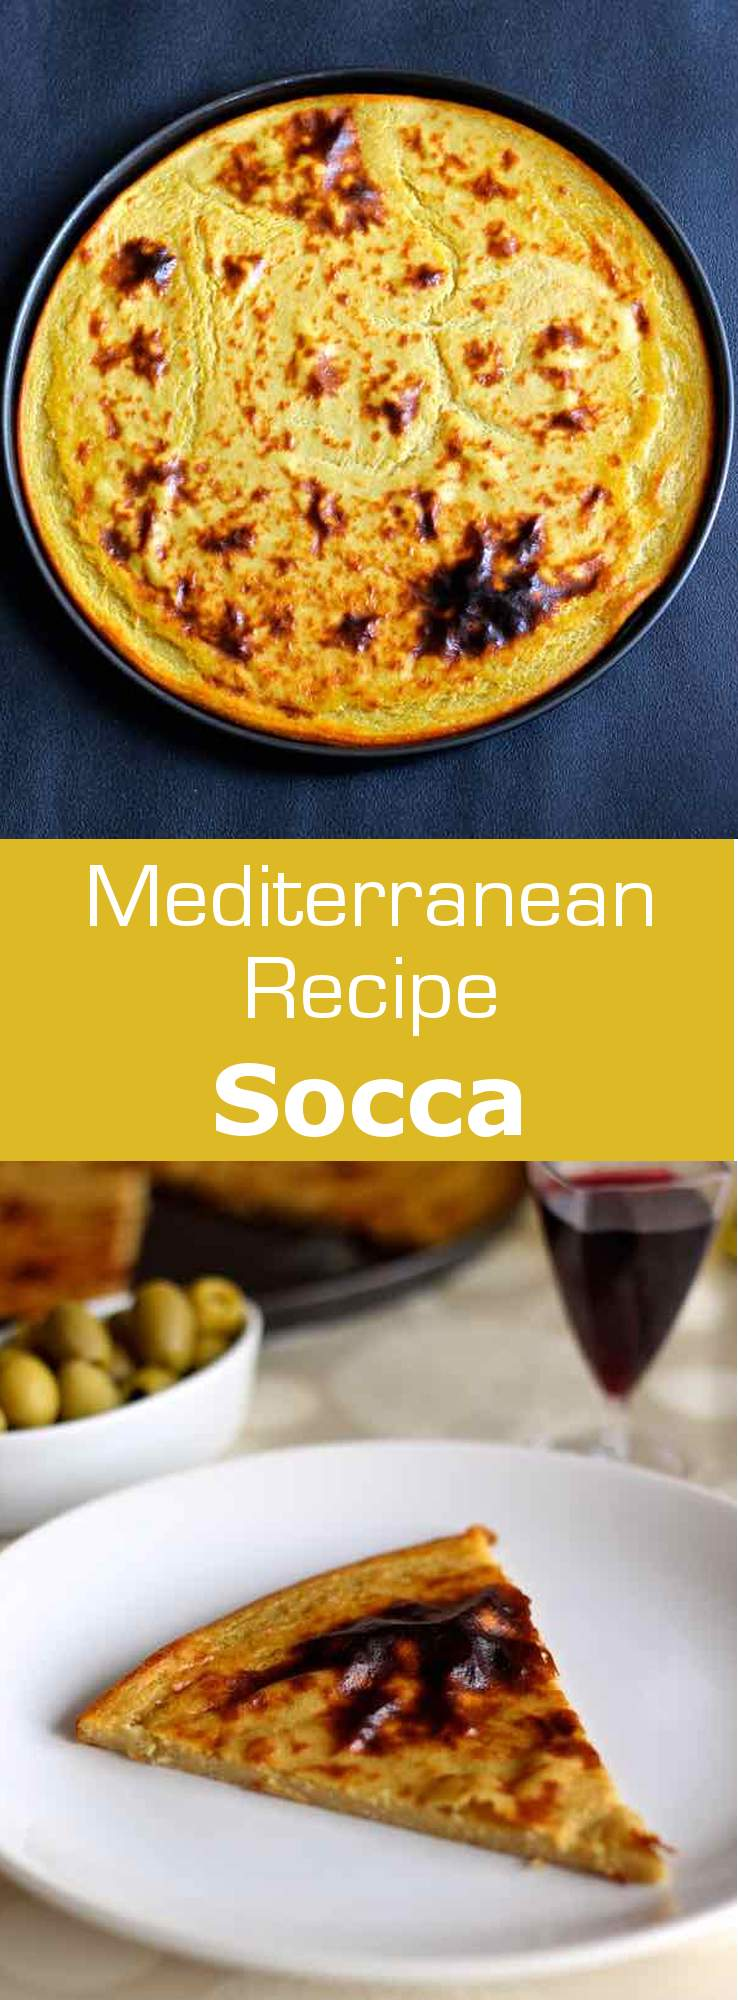 Socca is a traditional chickpea flour flat bread from the South of France, originally from around Nice and Monaco. #Nice #Monaco #Mediterranean #196flavors